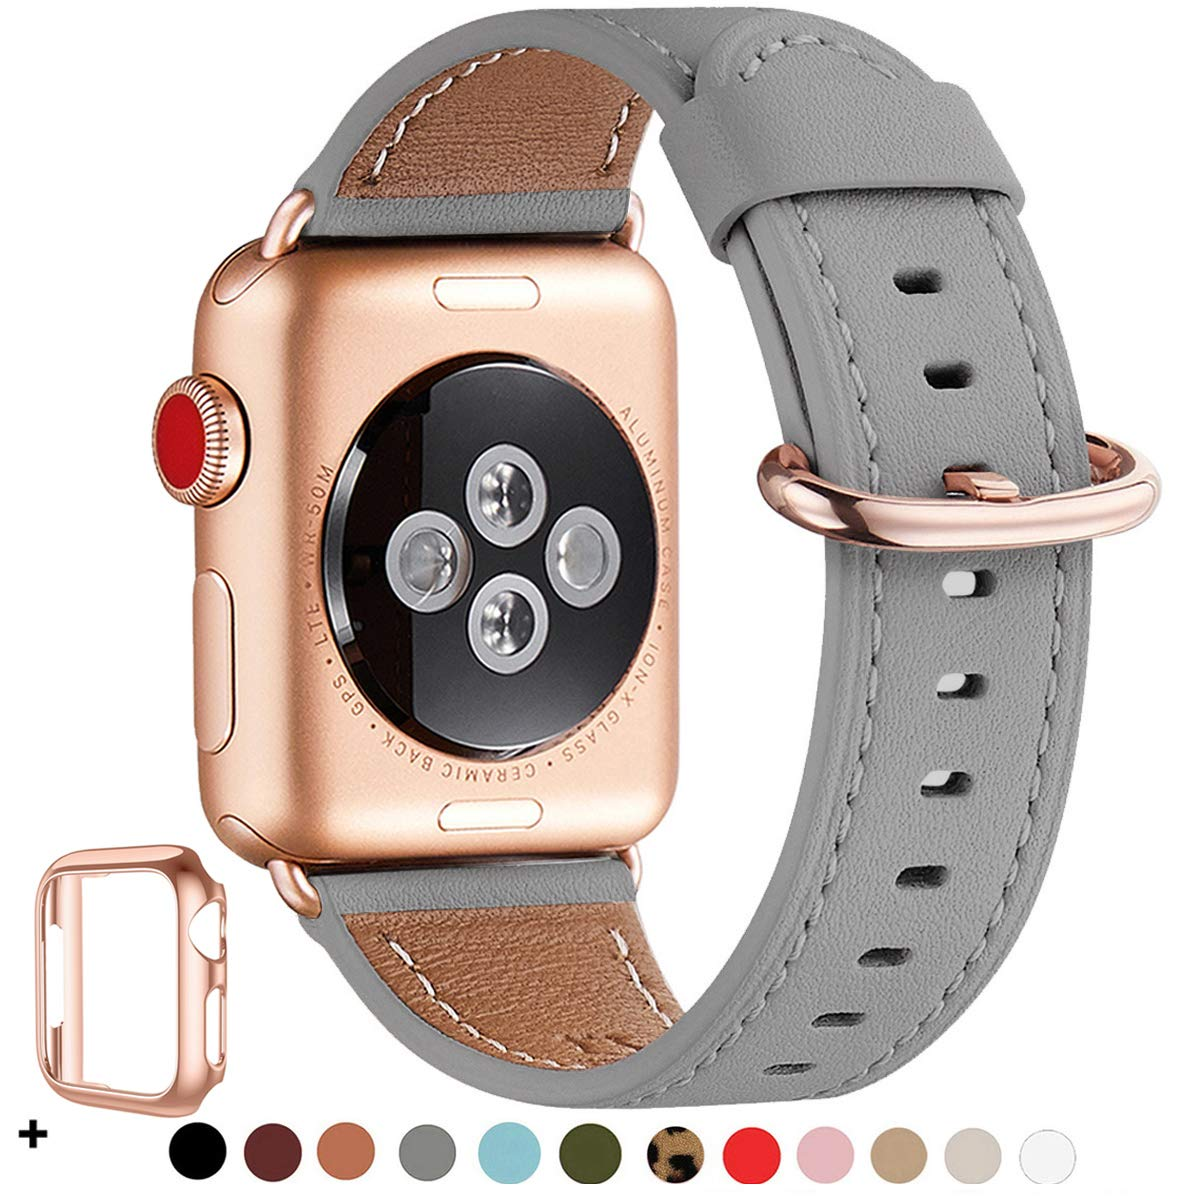 WFEAGL Compatible iWatch band 44mm 42mm,Top Grain Leather Band With Rose Gold Adapter(the Same as Series 5/4/3 With Gold Aluminum Case in Color)for iWatch Series 5 /4/3/2/1(Gray Band+RoseGold Adapter)